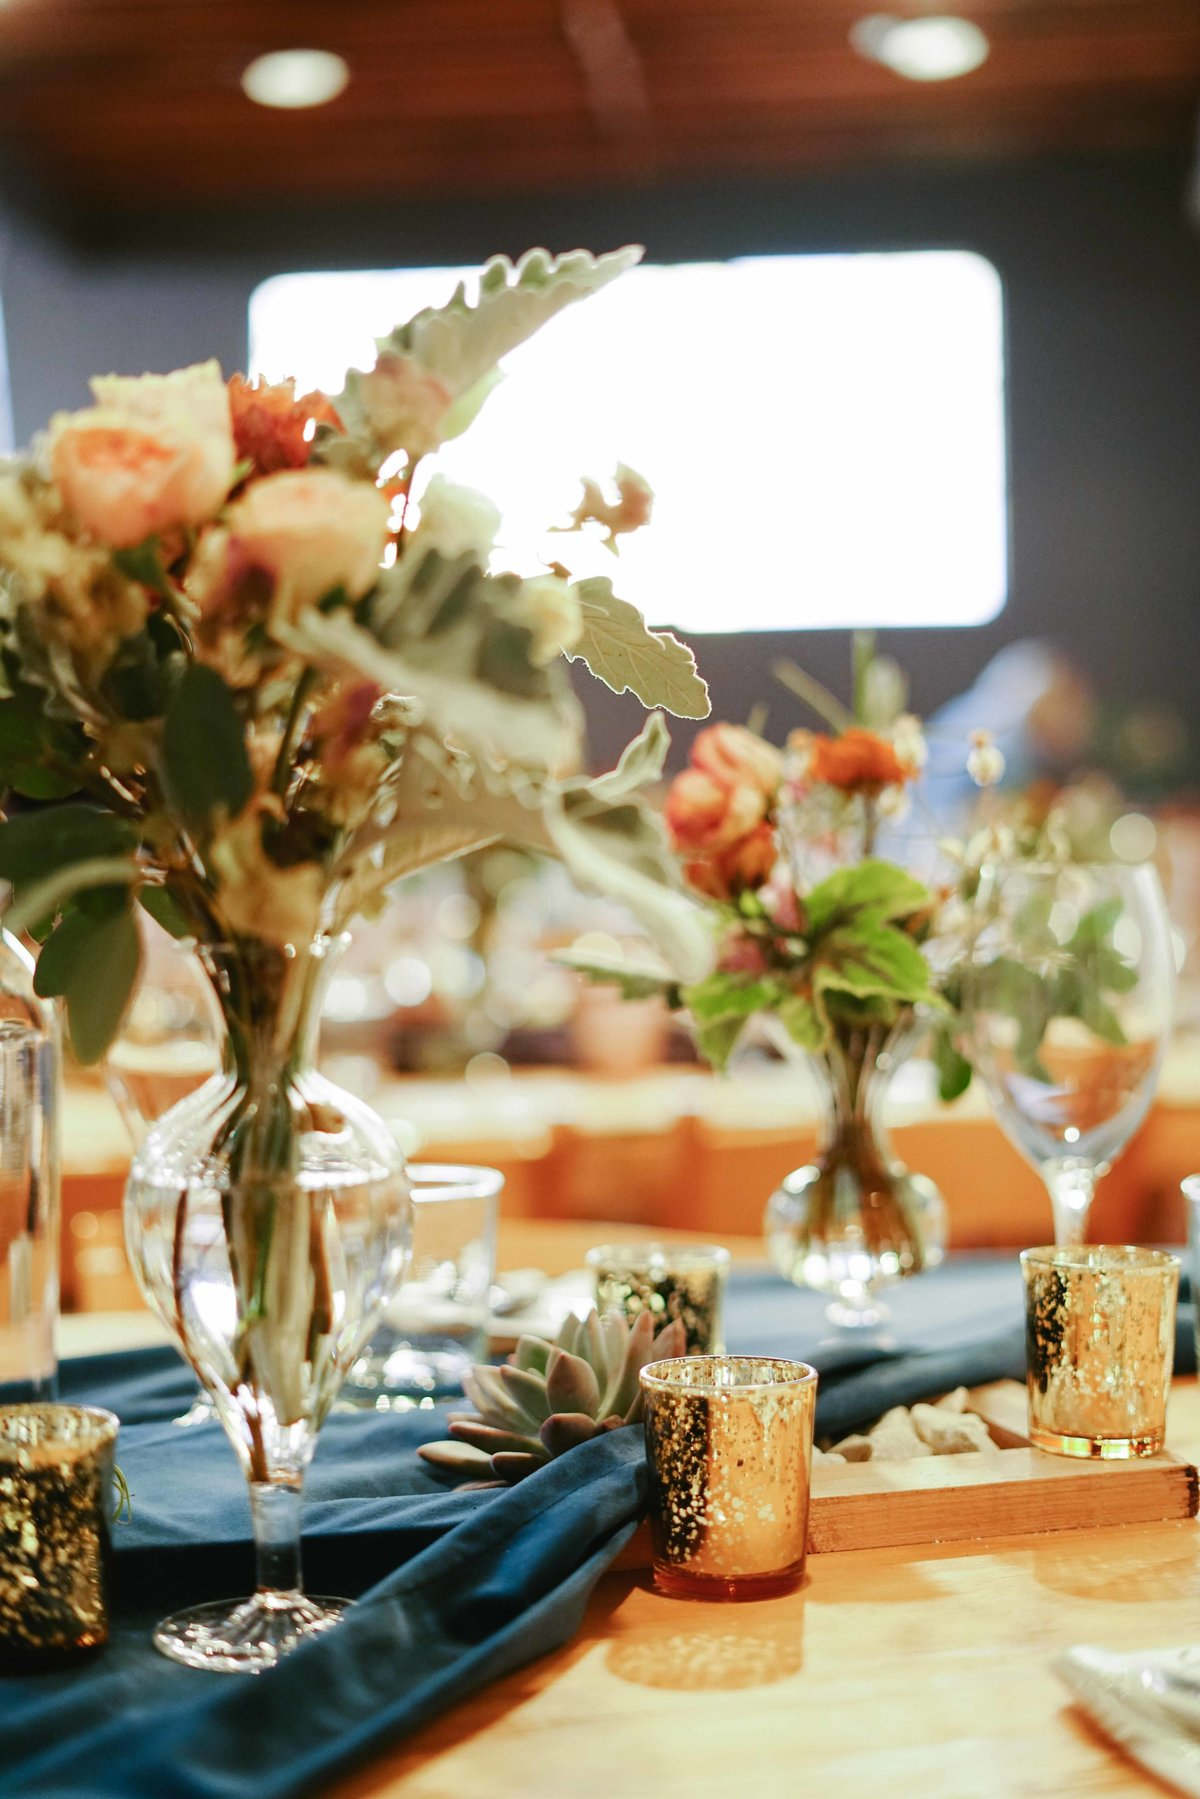 Dinner party table setting with blue table runner and pink floral arrangements